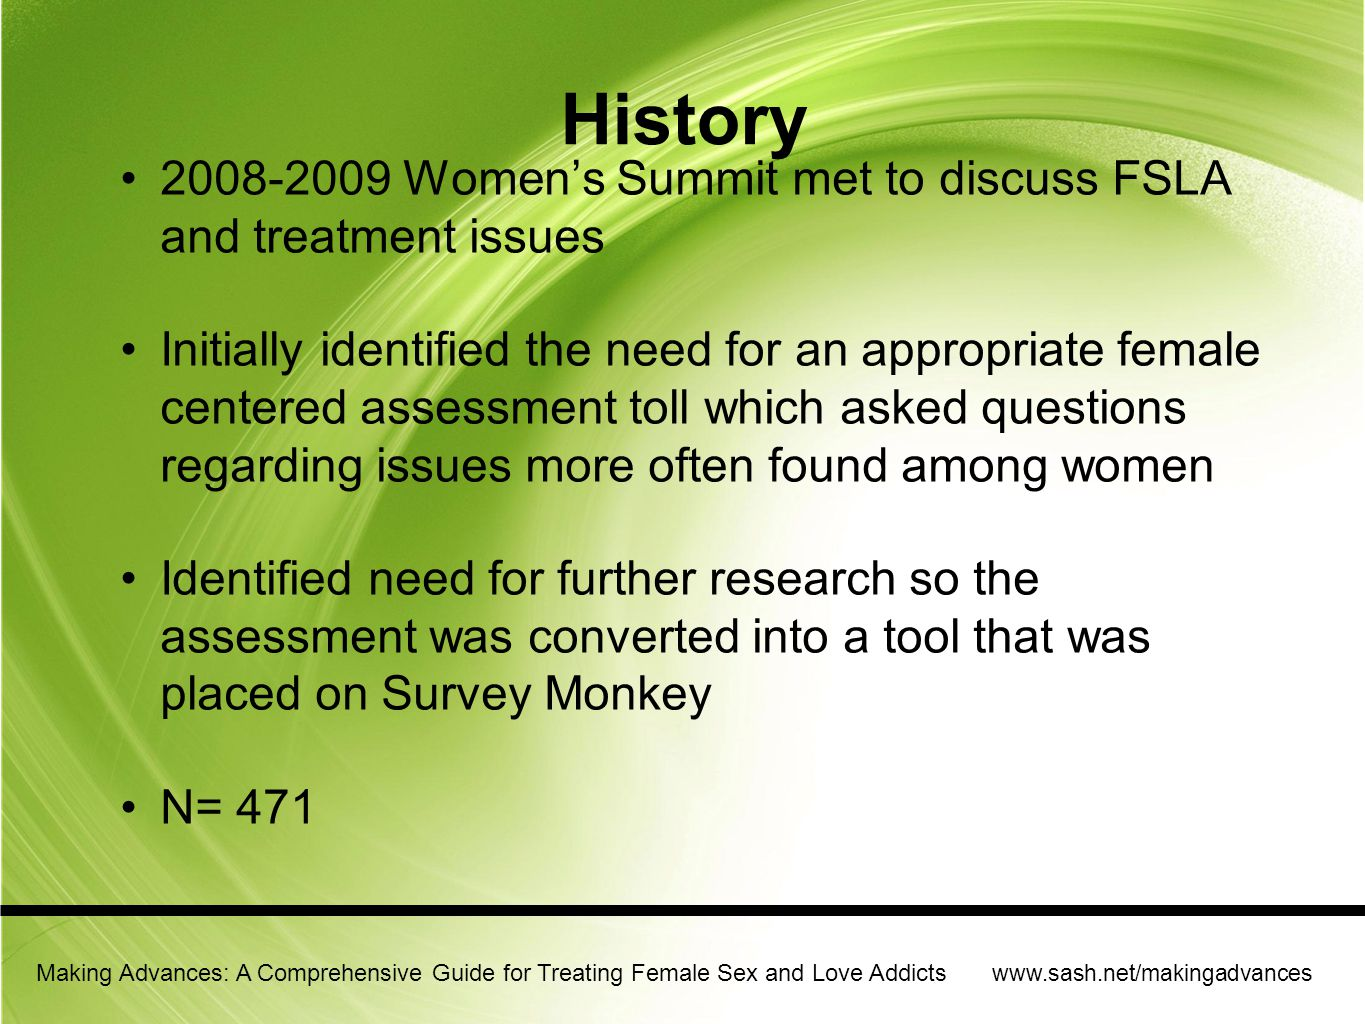 History 2008-2009 Women's Summit met to discuss FSLA and treatment issues.